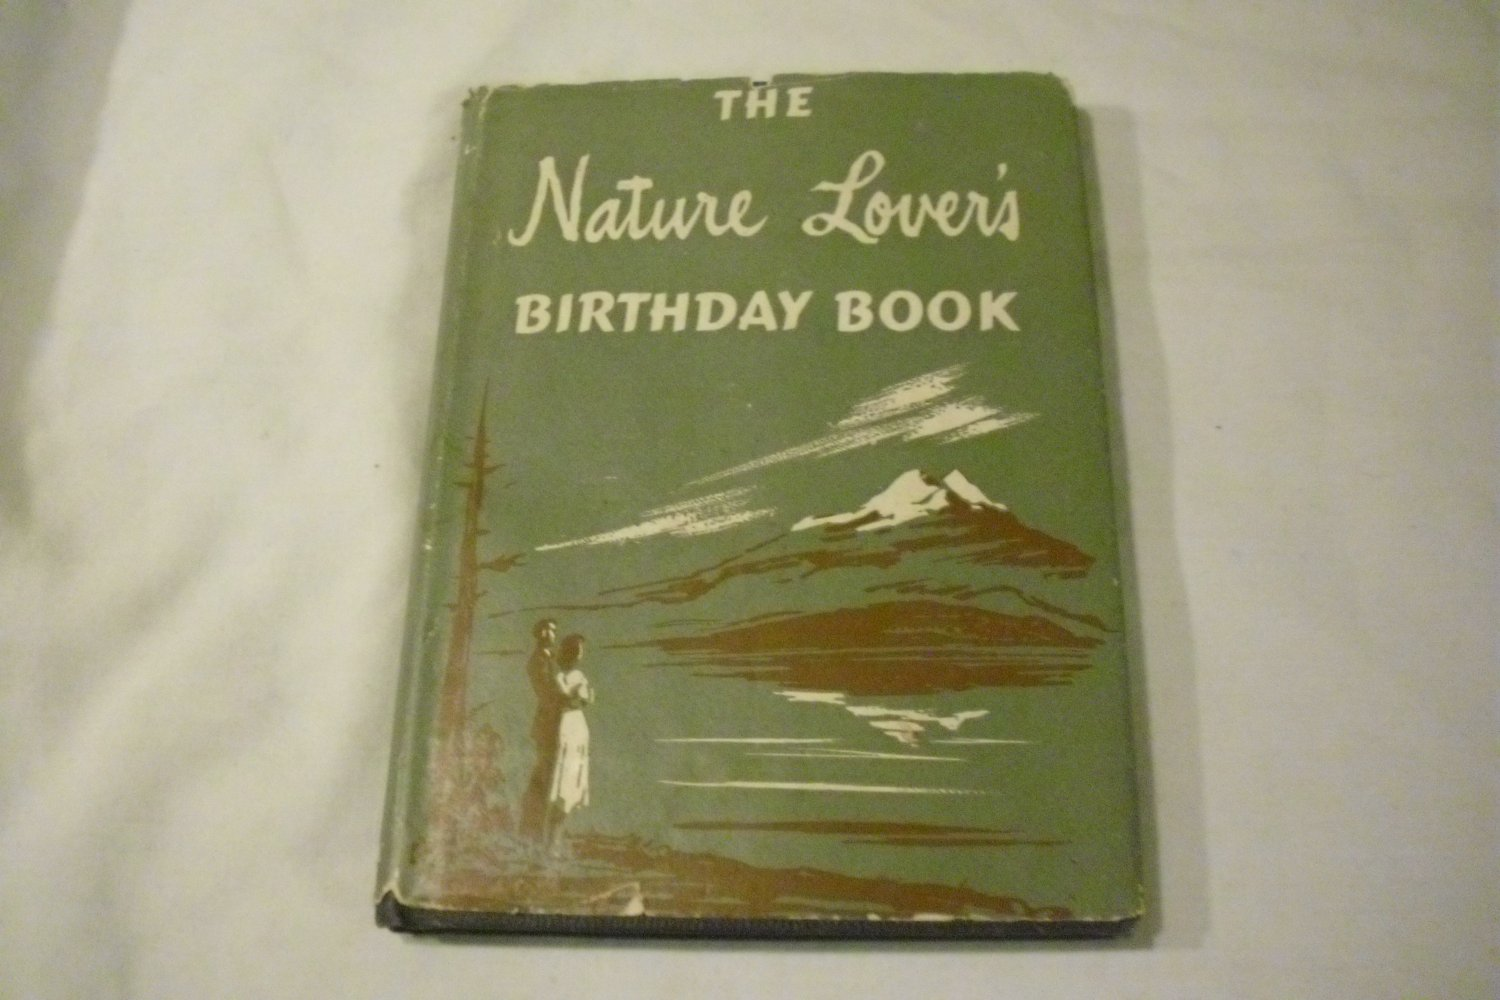 The Nature Lover's Birthday Book by David McKay Company